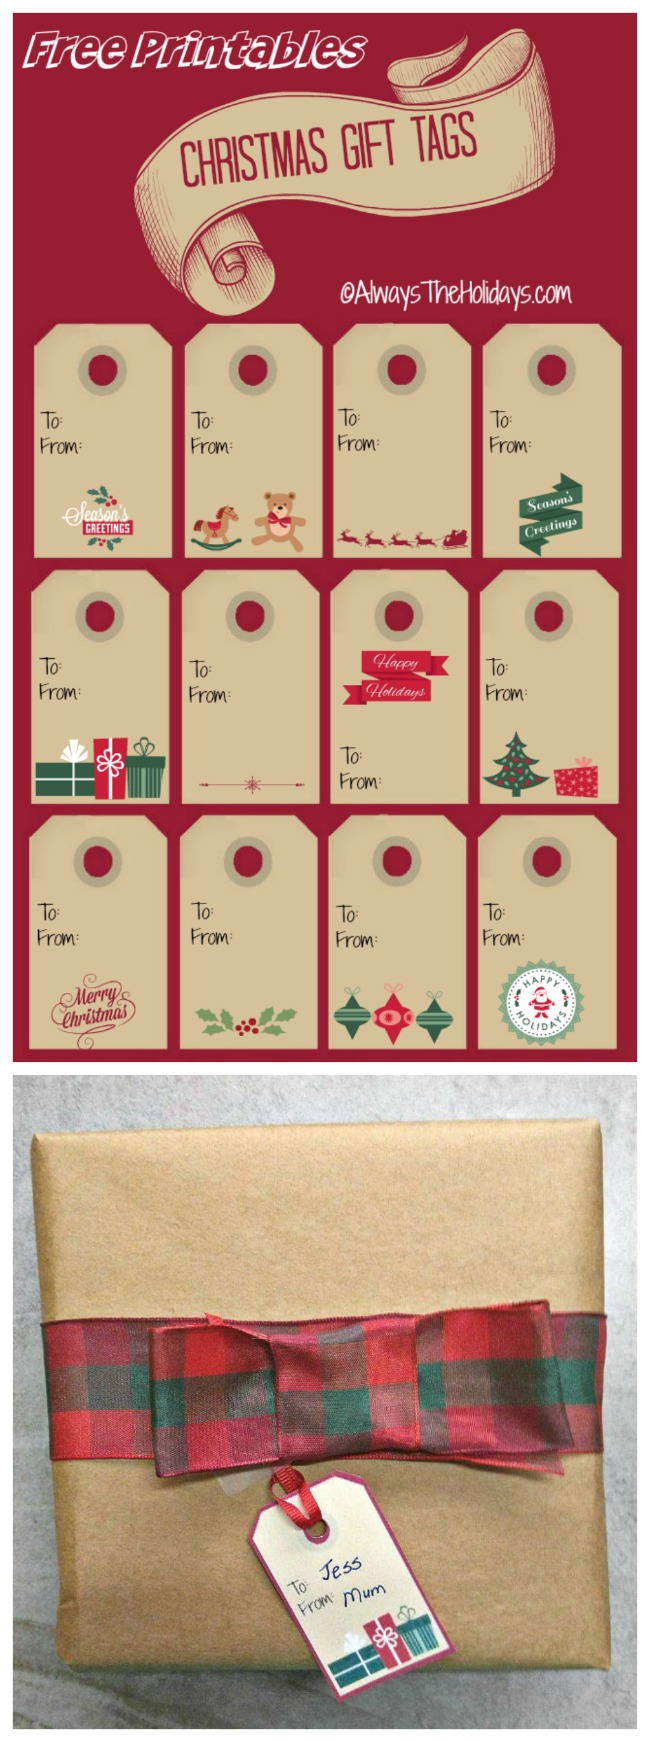 These free Christmas labels add a hand made festive touch to your holiday packages. #christmaslabels #dhristmasgifttags